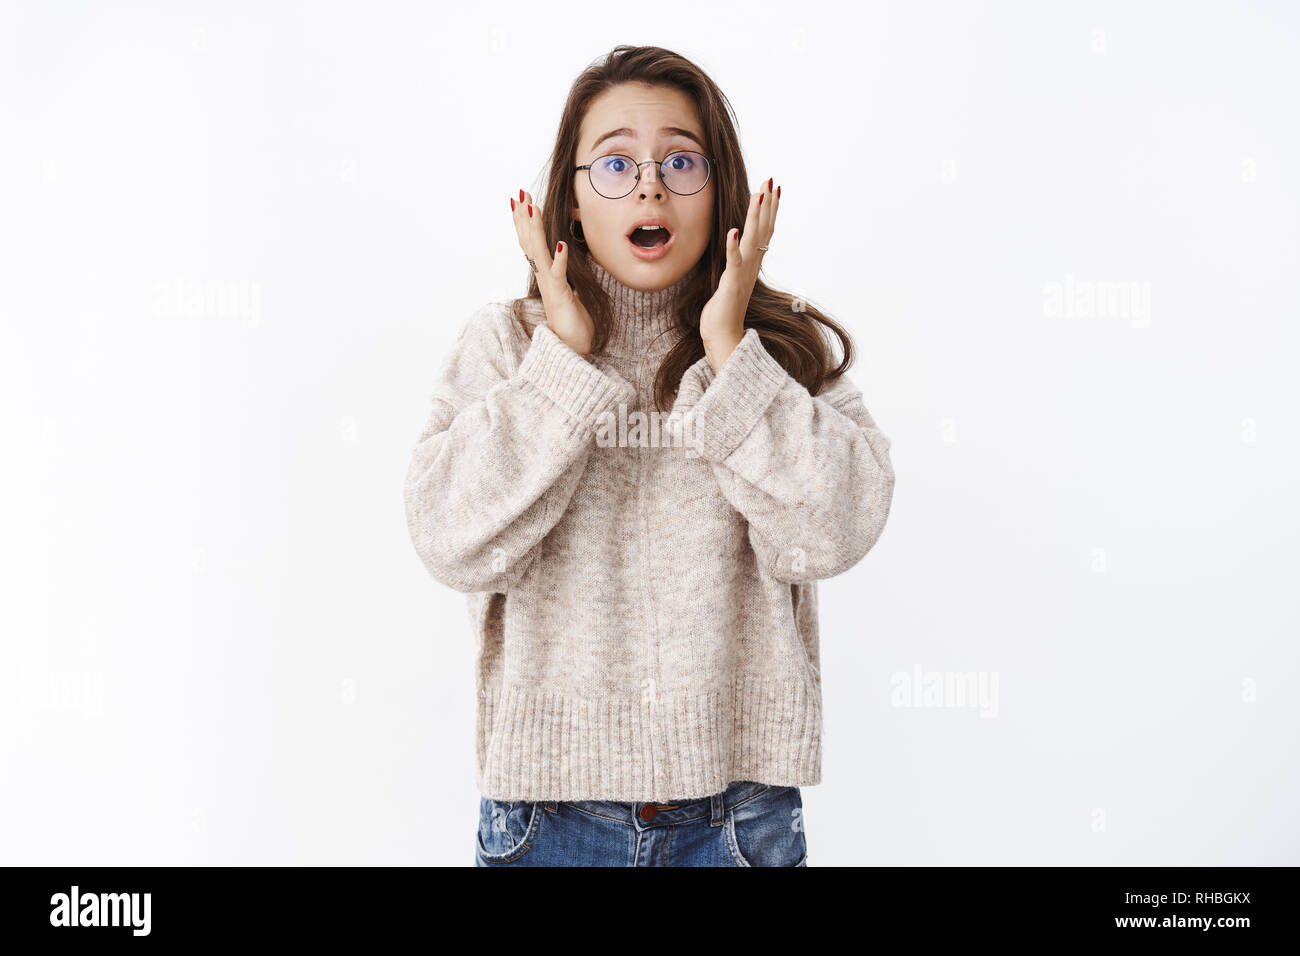 Worried and shocked cute woman showing empathy and shook as reacting to amazing terrible news open mouth and raising eyebrows with eyes in surprise Stock Photo